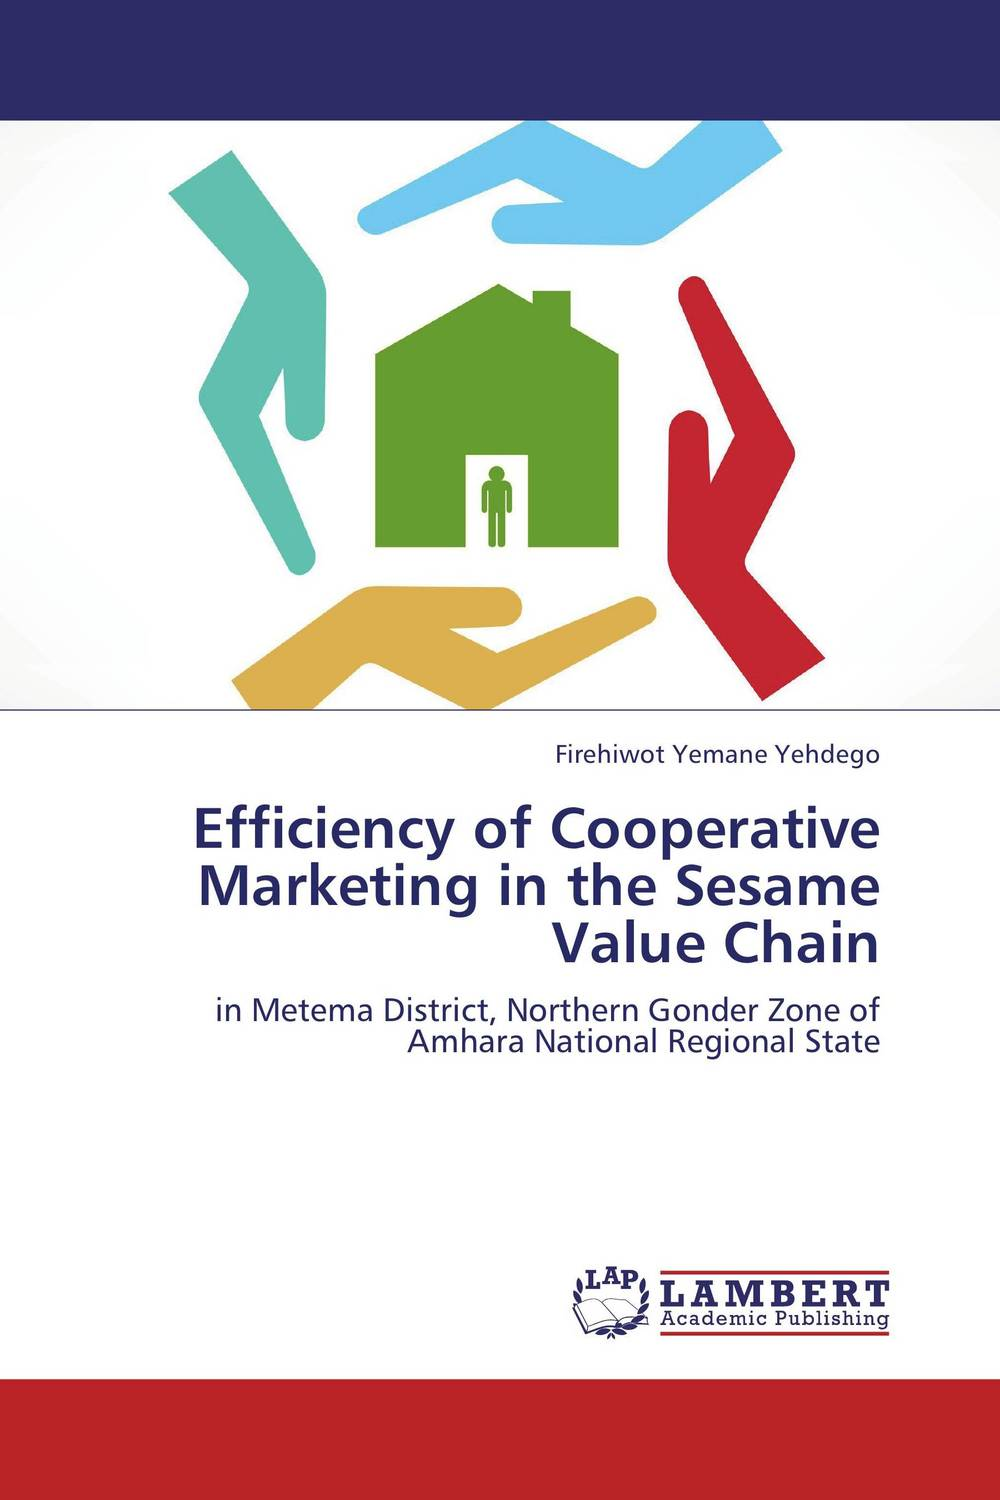 Efficiency of Cooperative Marketing in the Sesame Value Chain игрушка ecx ruckus gray blue ecx00013t1